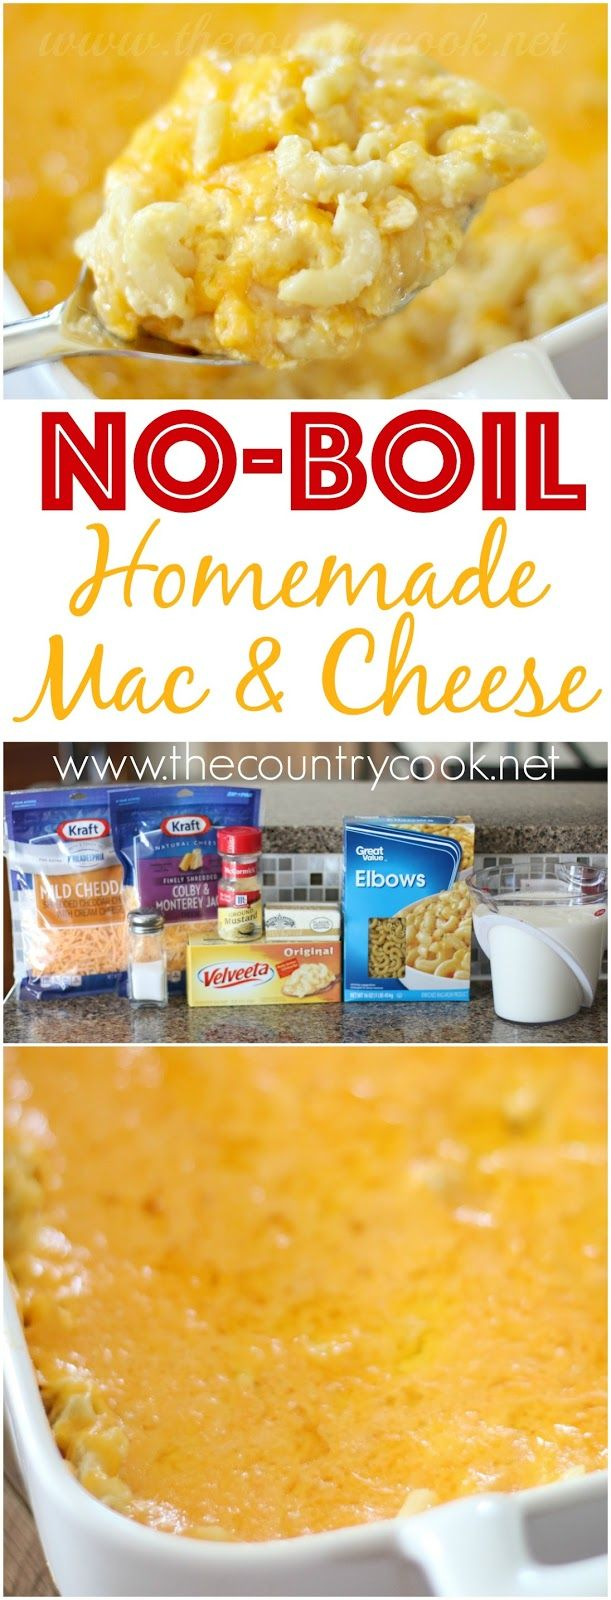 No-Boil Homemade Macaroni and Cheese recipe from The Country Cook. No boiling the noodles beforehand! And it's all made in one dish so it saves on dirty dishes. Our favorite!Brandie | The Country Cook | Easy Recipes